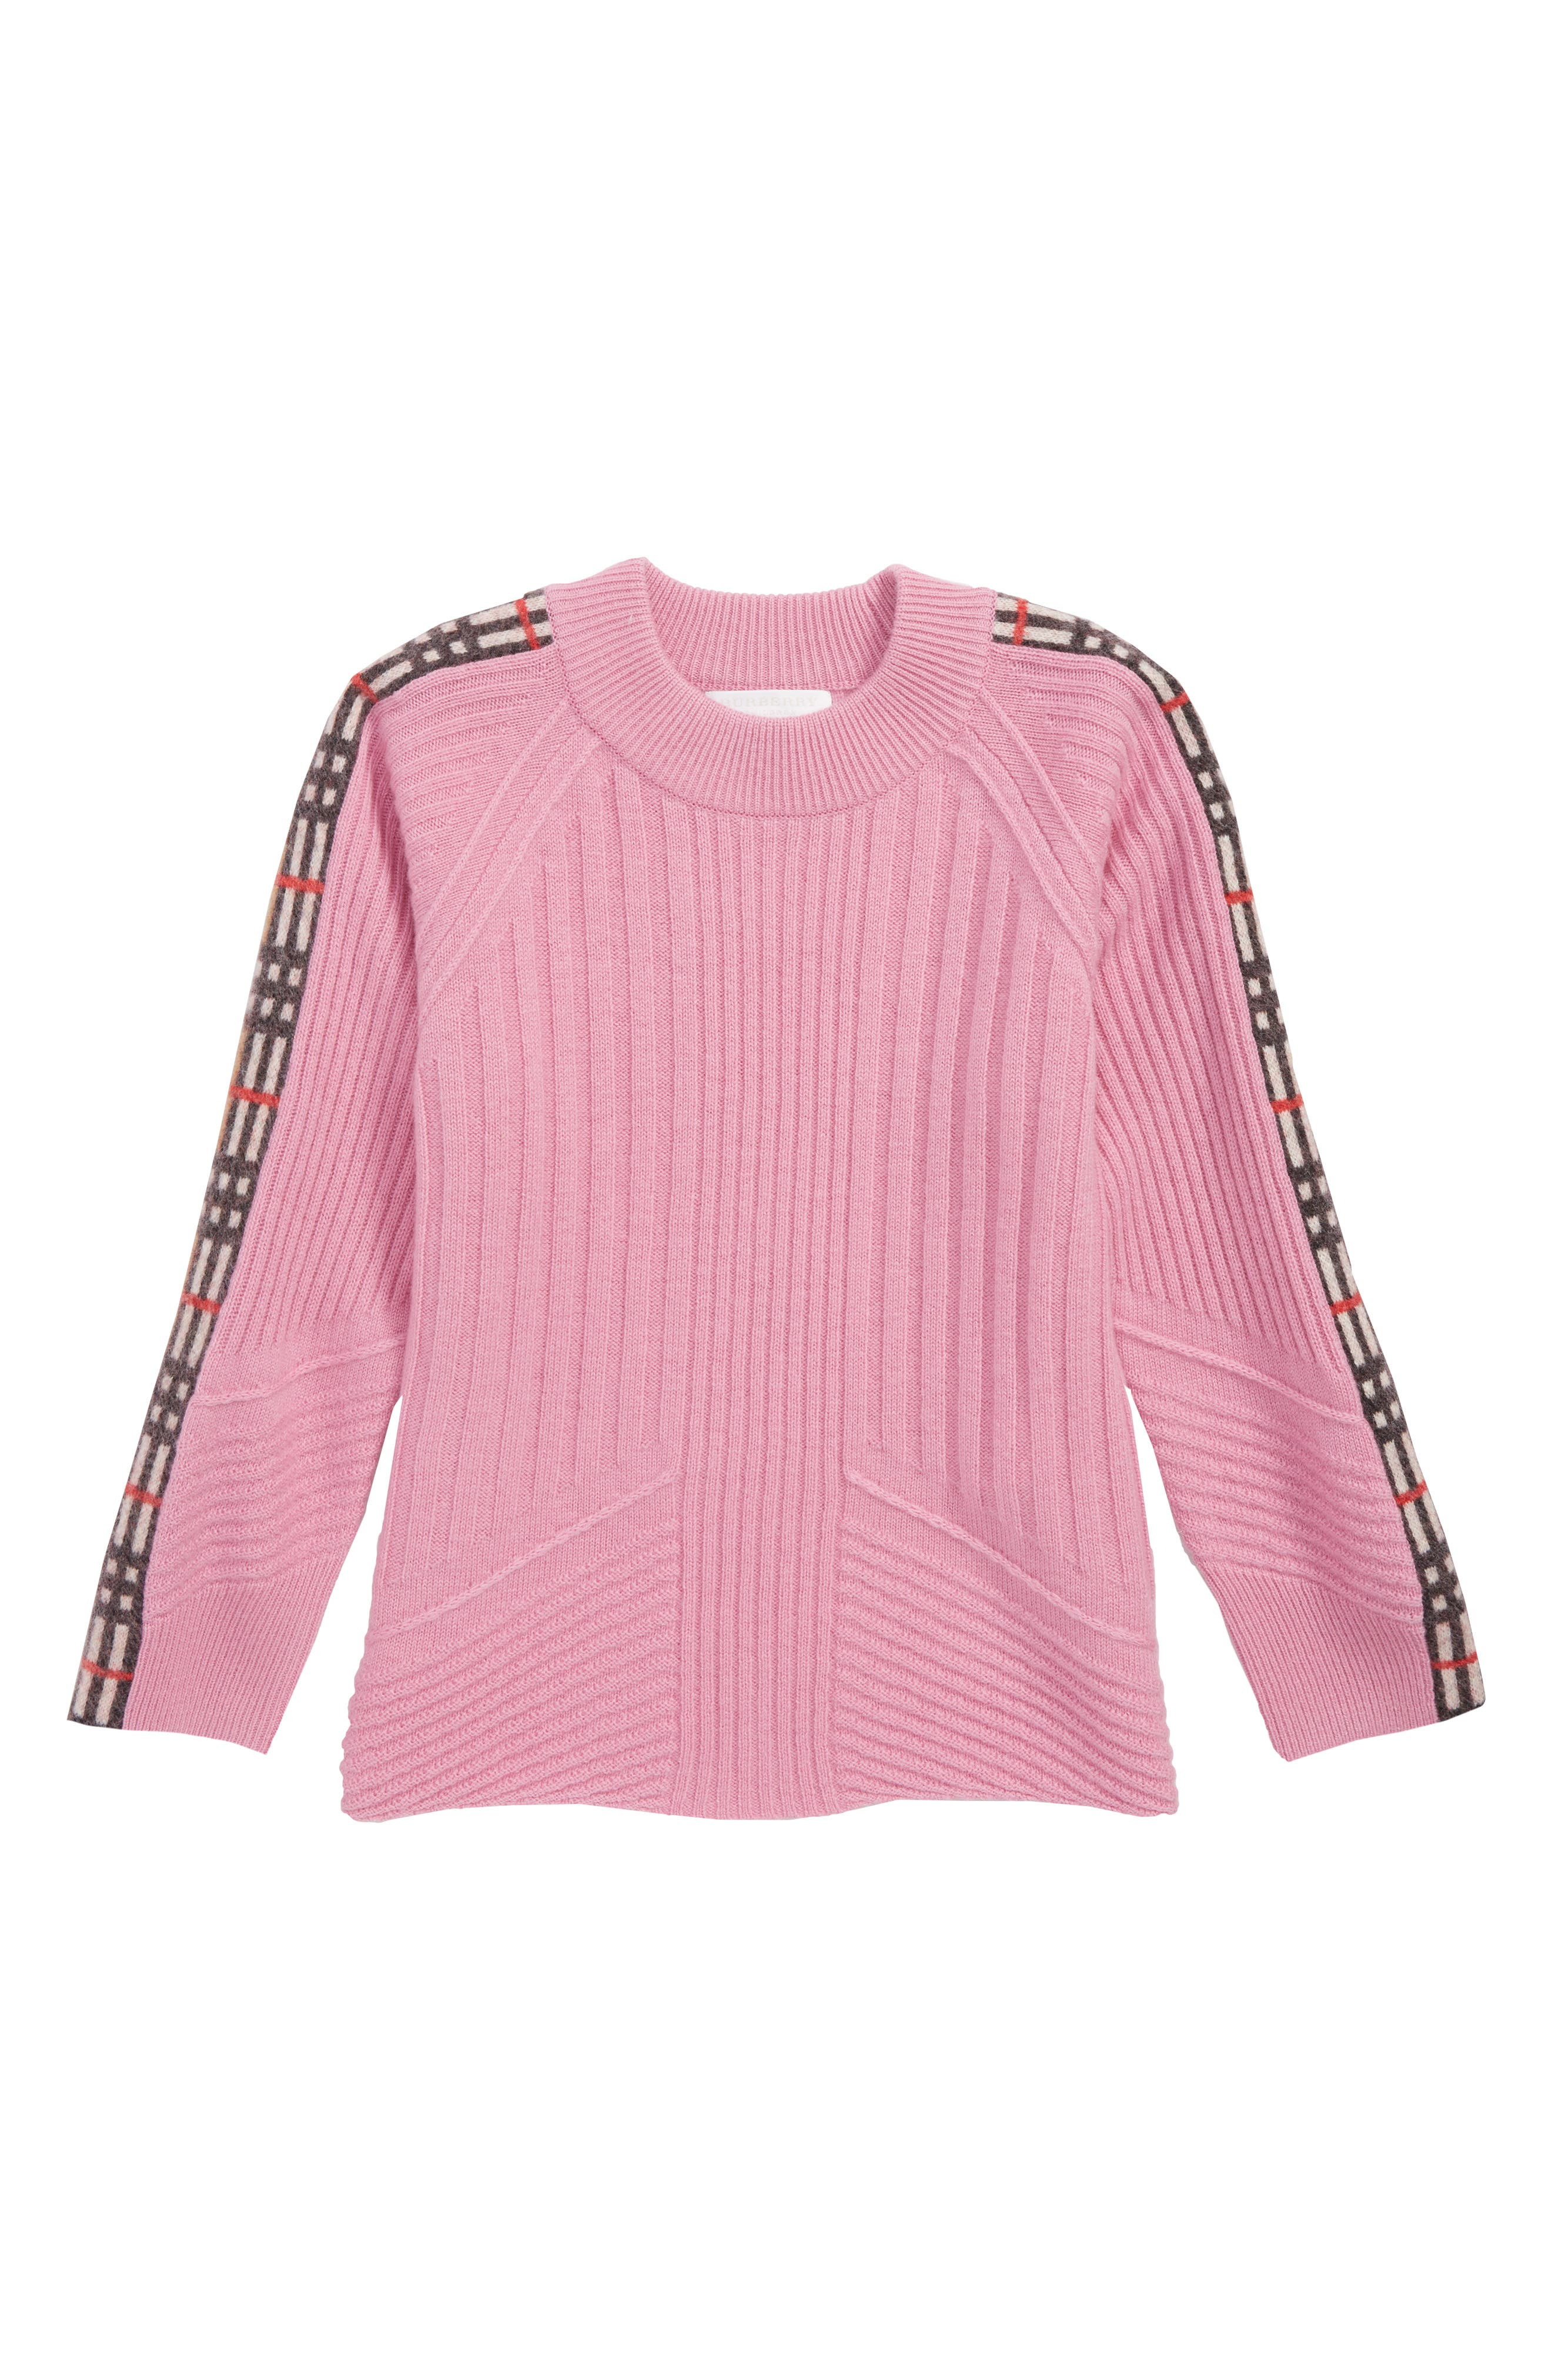 Cathie Mixed Stitch Pullover Sweater,                         Main,                         color, ROSE PINK